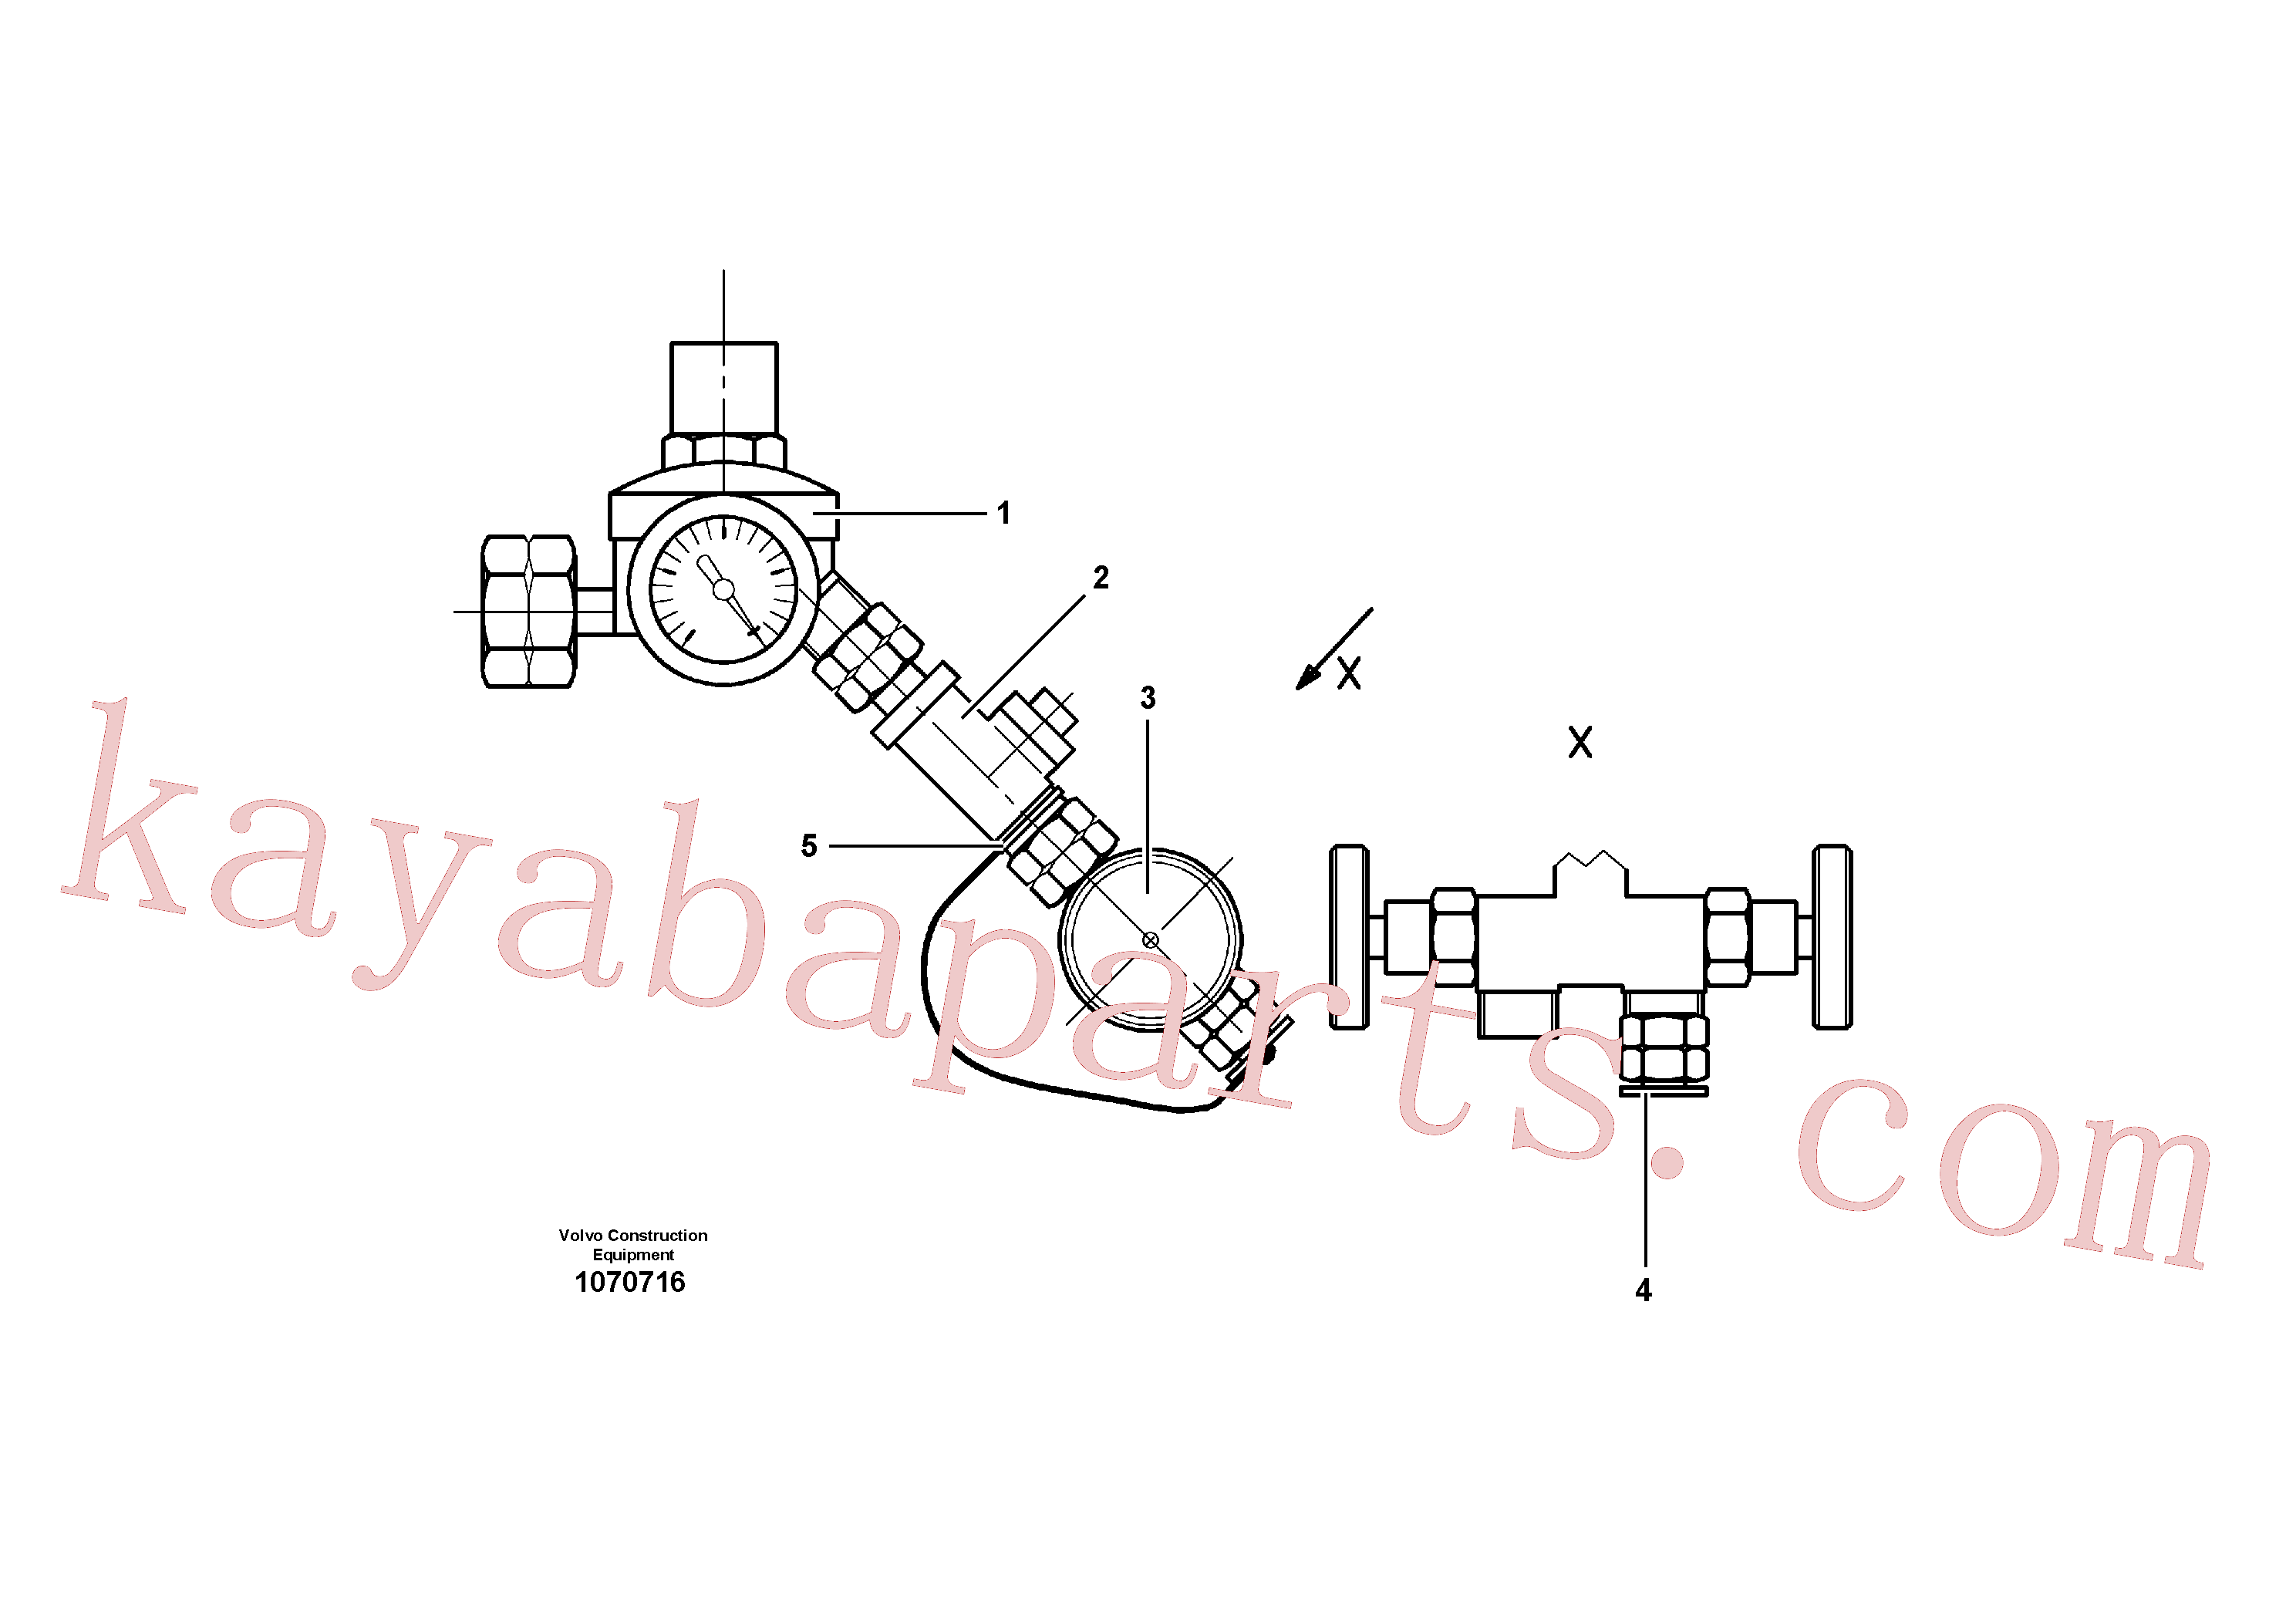 VOE12776613 for Volvo Gasbottle connection(1070716 assembly)